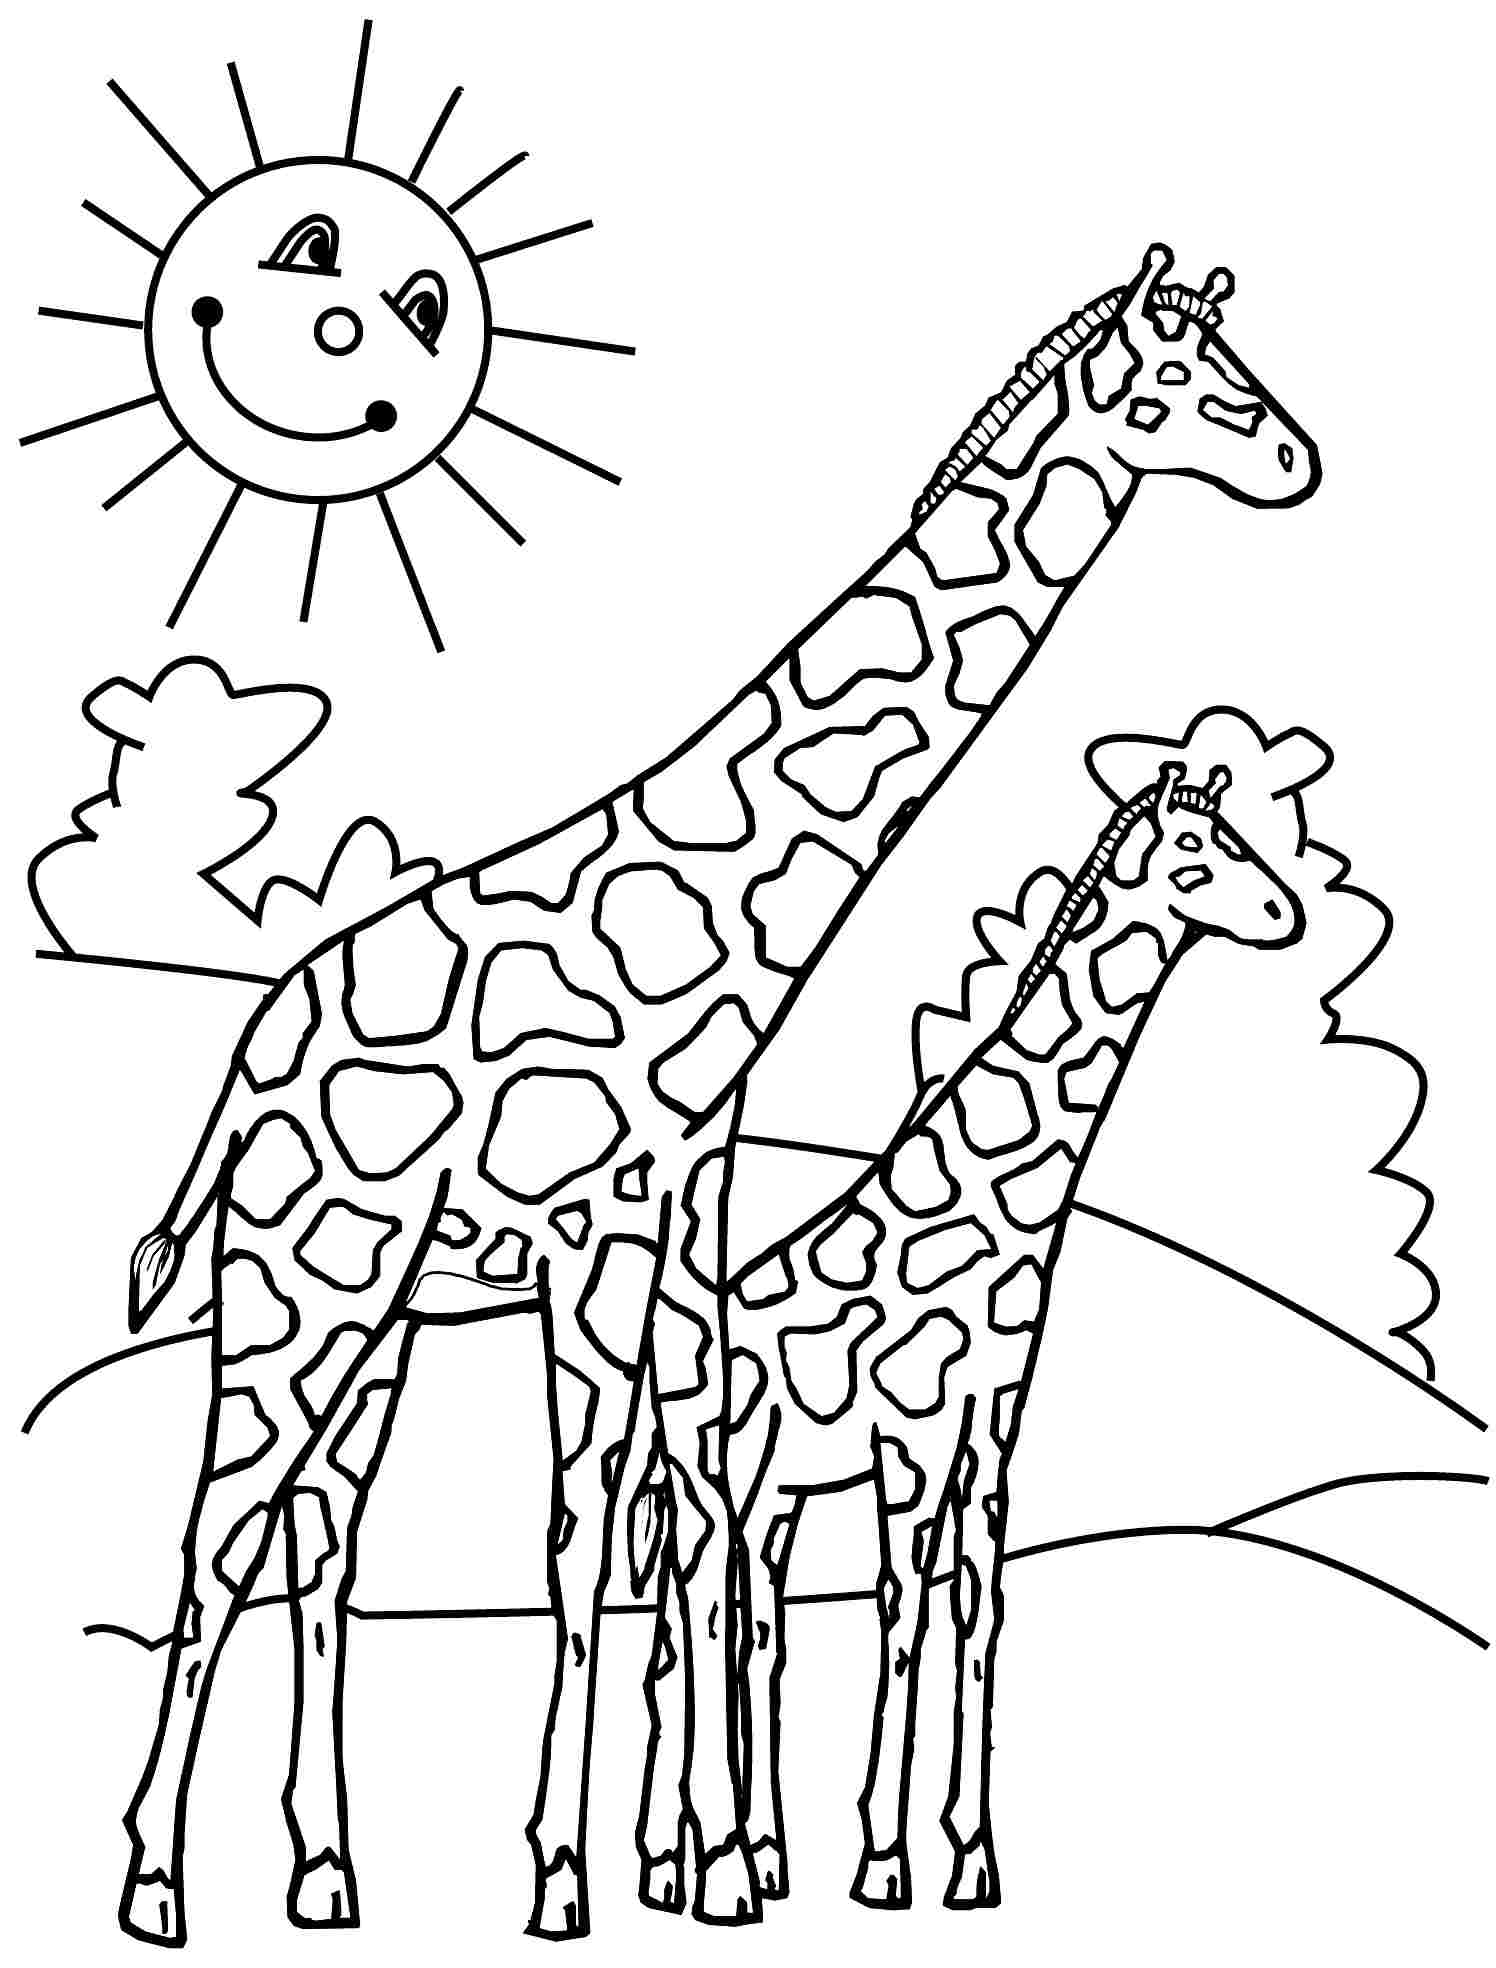 for coloring book free printable tangled coloring pages for kids book for coloring